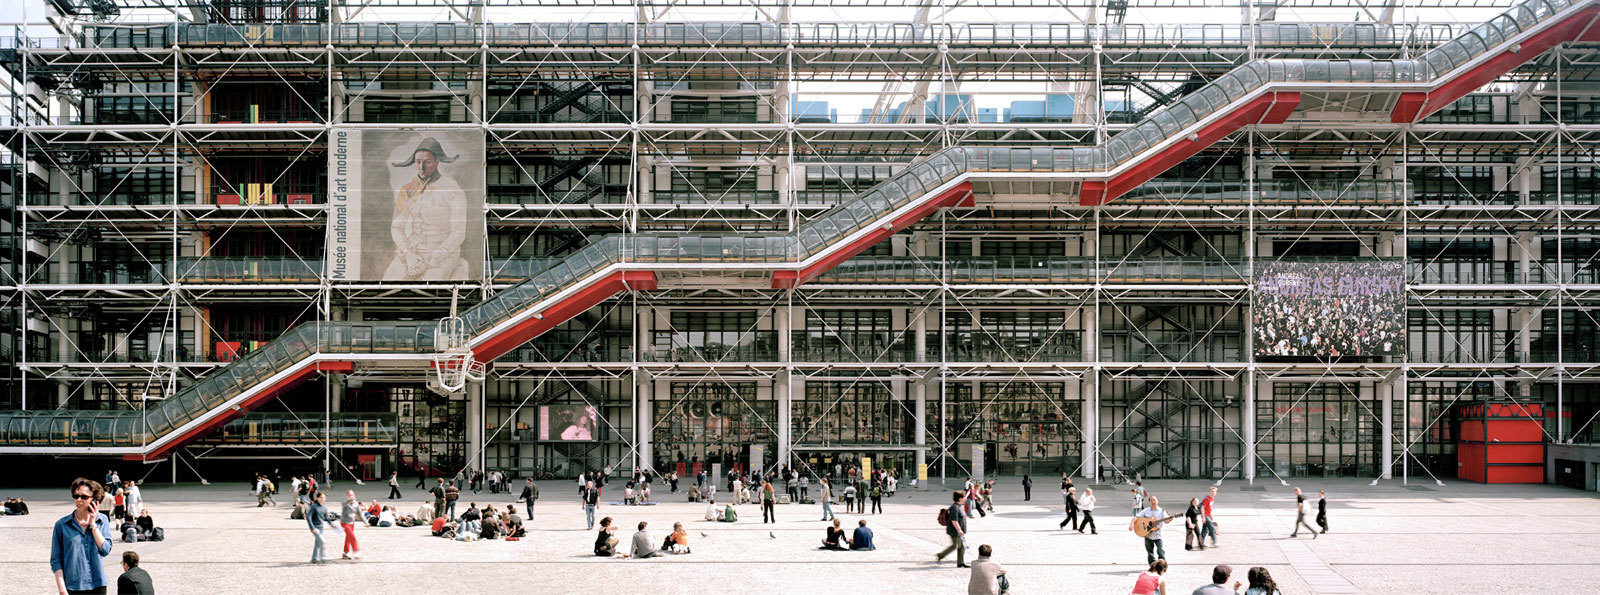 Centre Pompidou - National Museum of Modern Art, library and music center - Top Places to Visit During Paris Design Week and Maison et Objet 2017